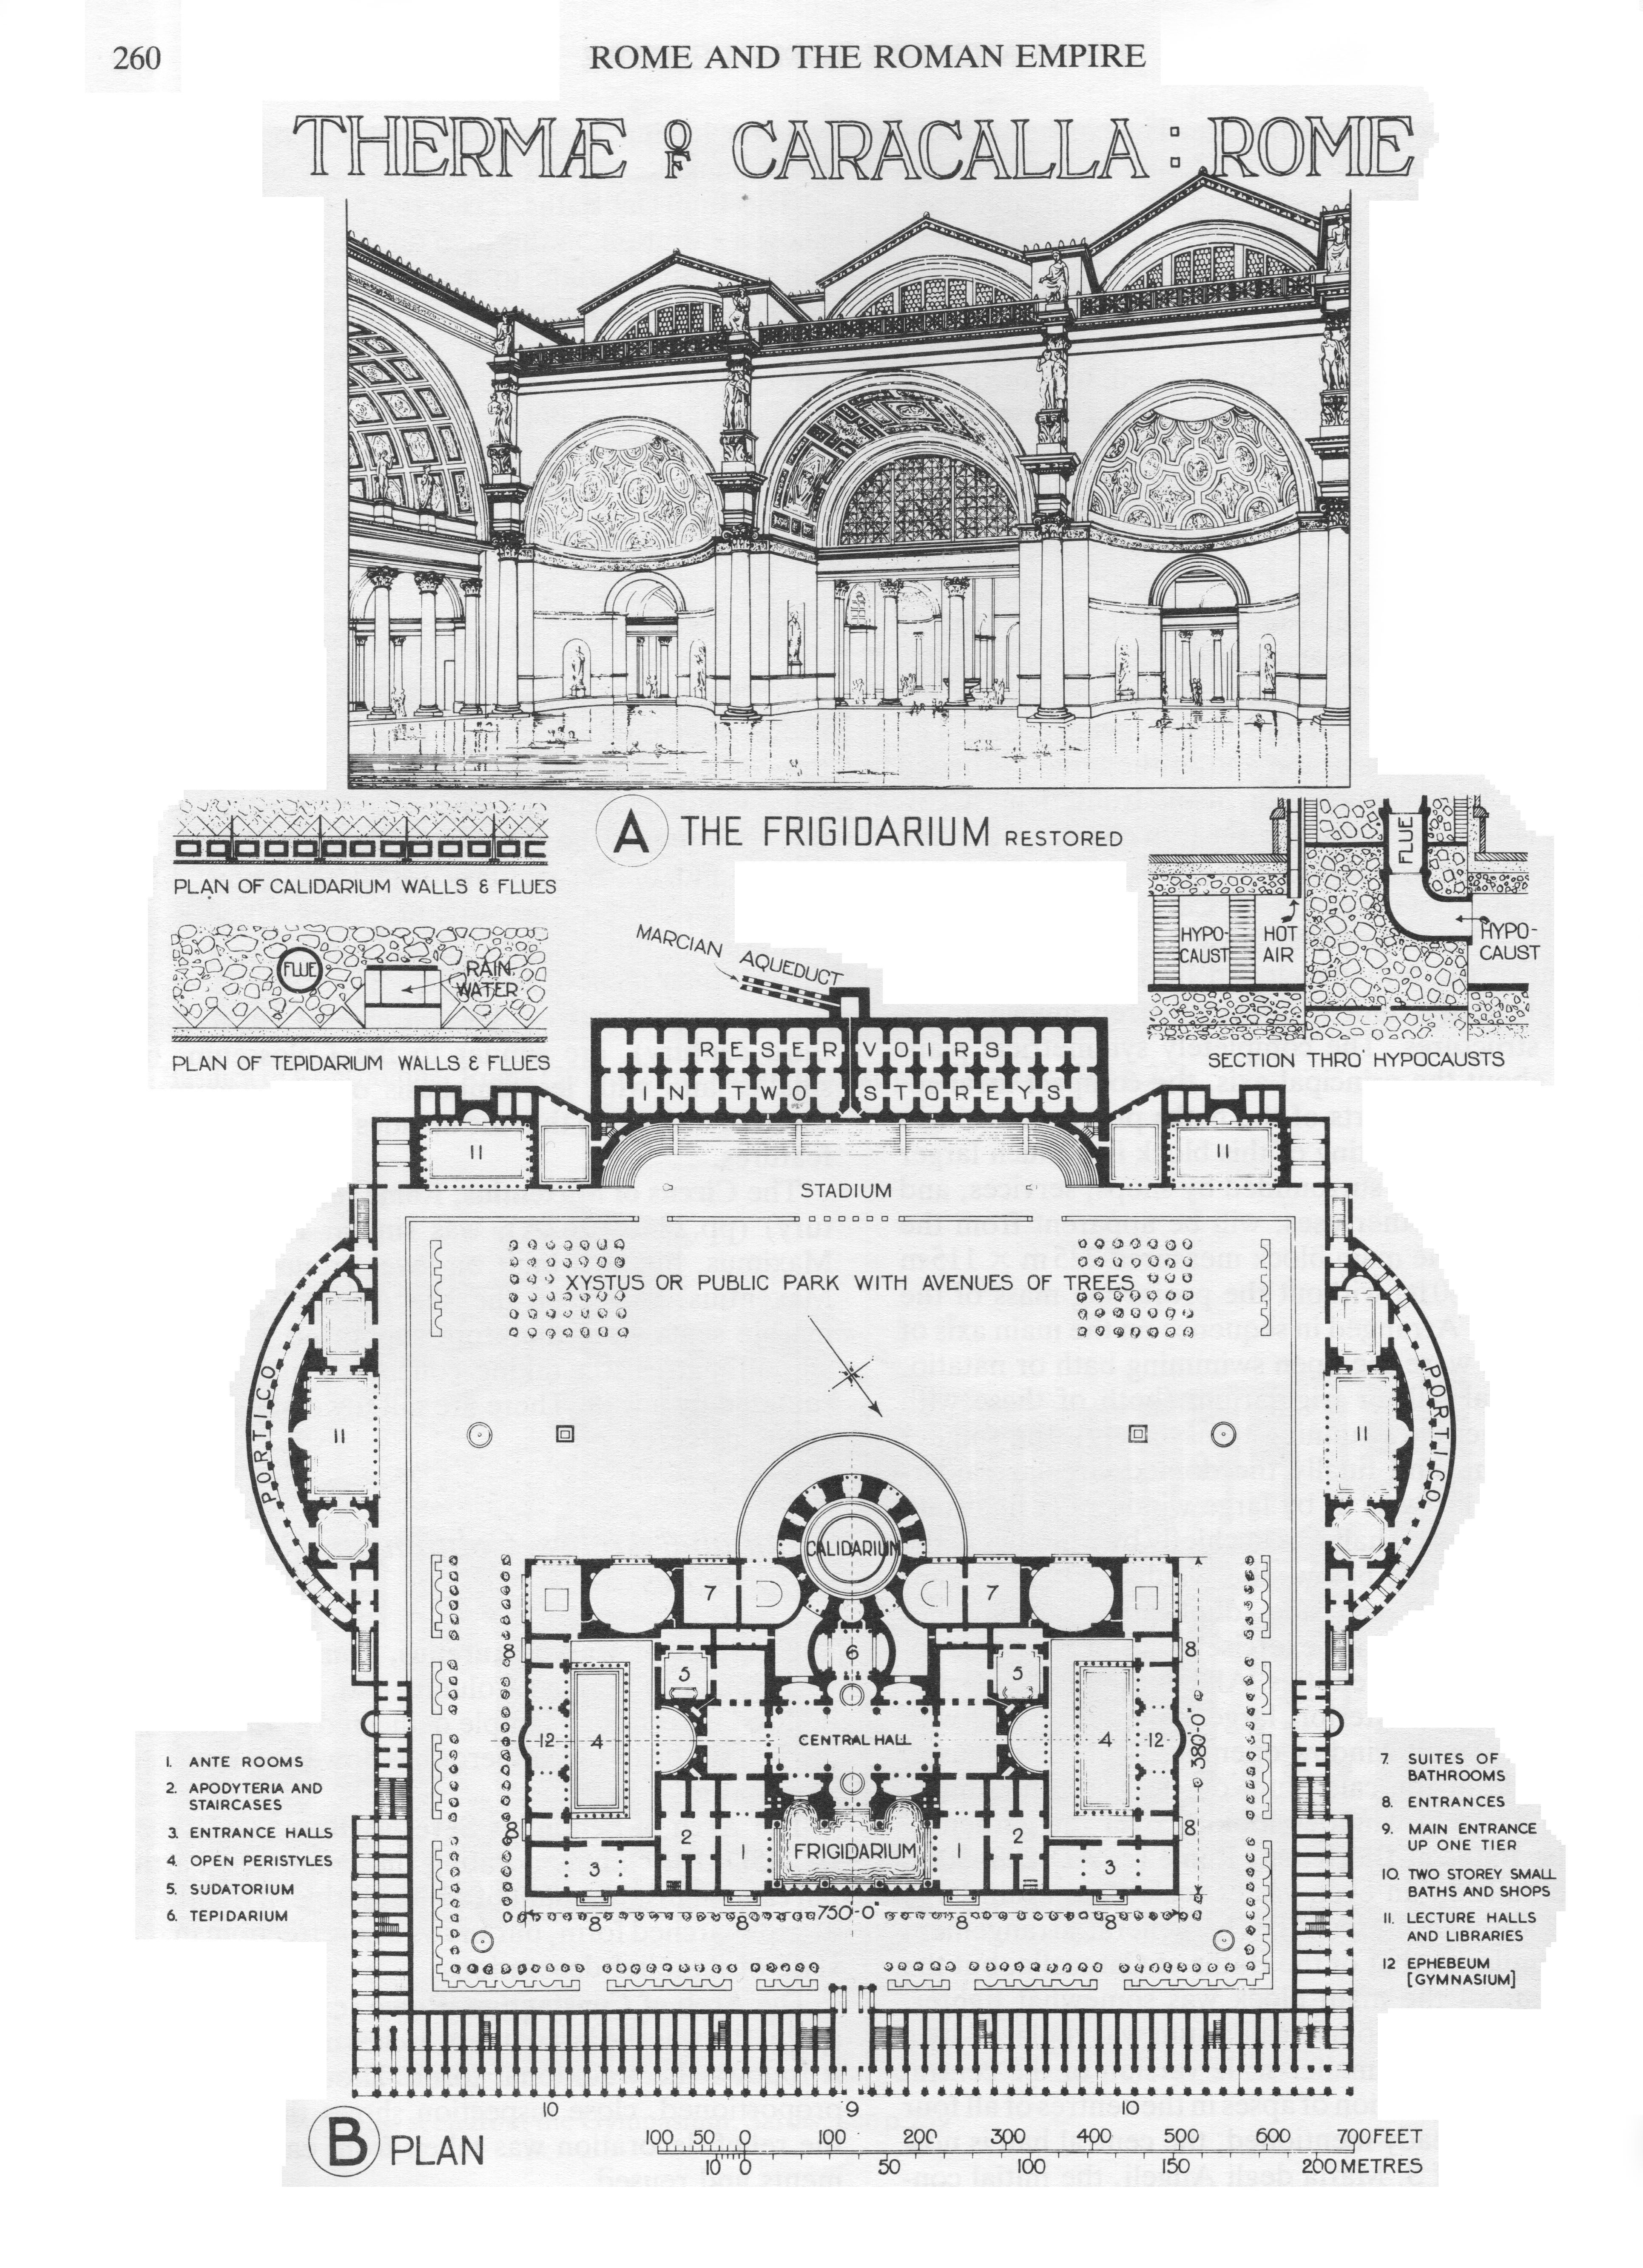 Roman Architecture Drawing thermae antonianae, baths of caracalla | roma: thermae romanae